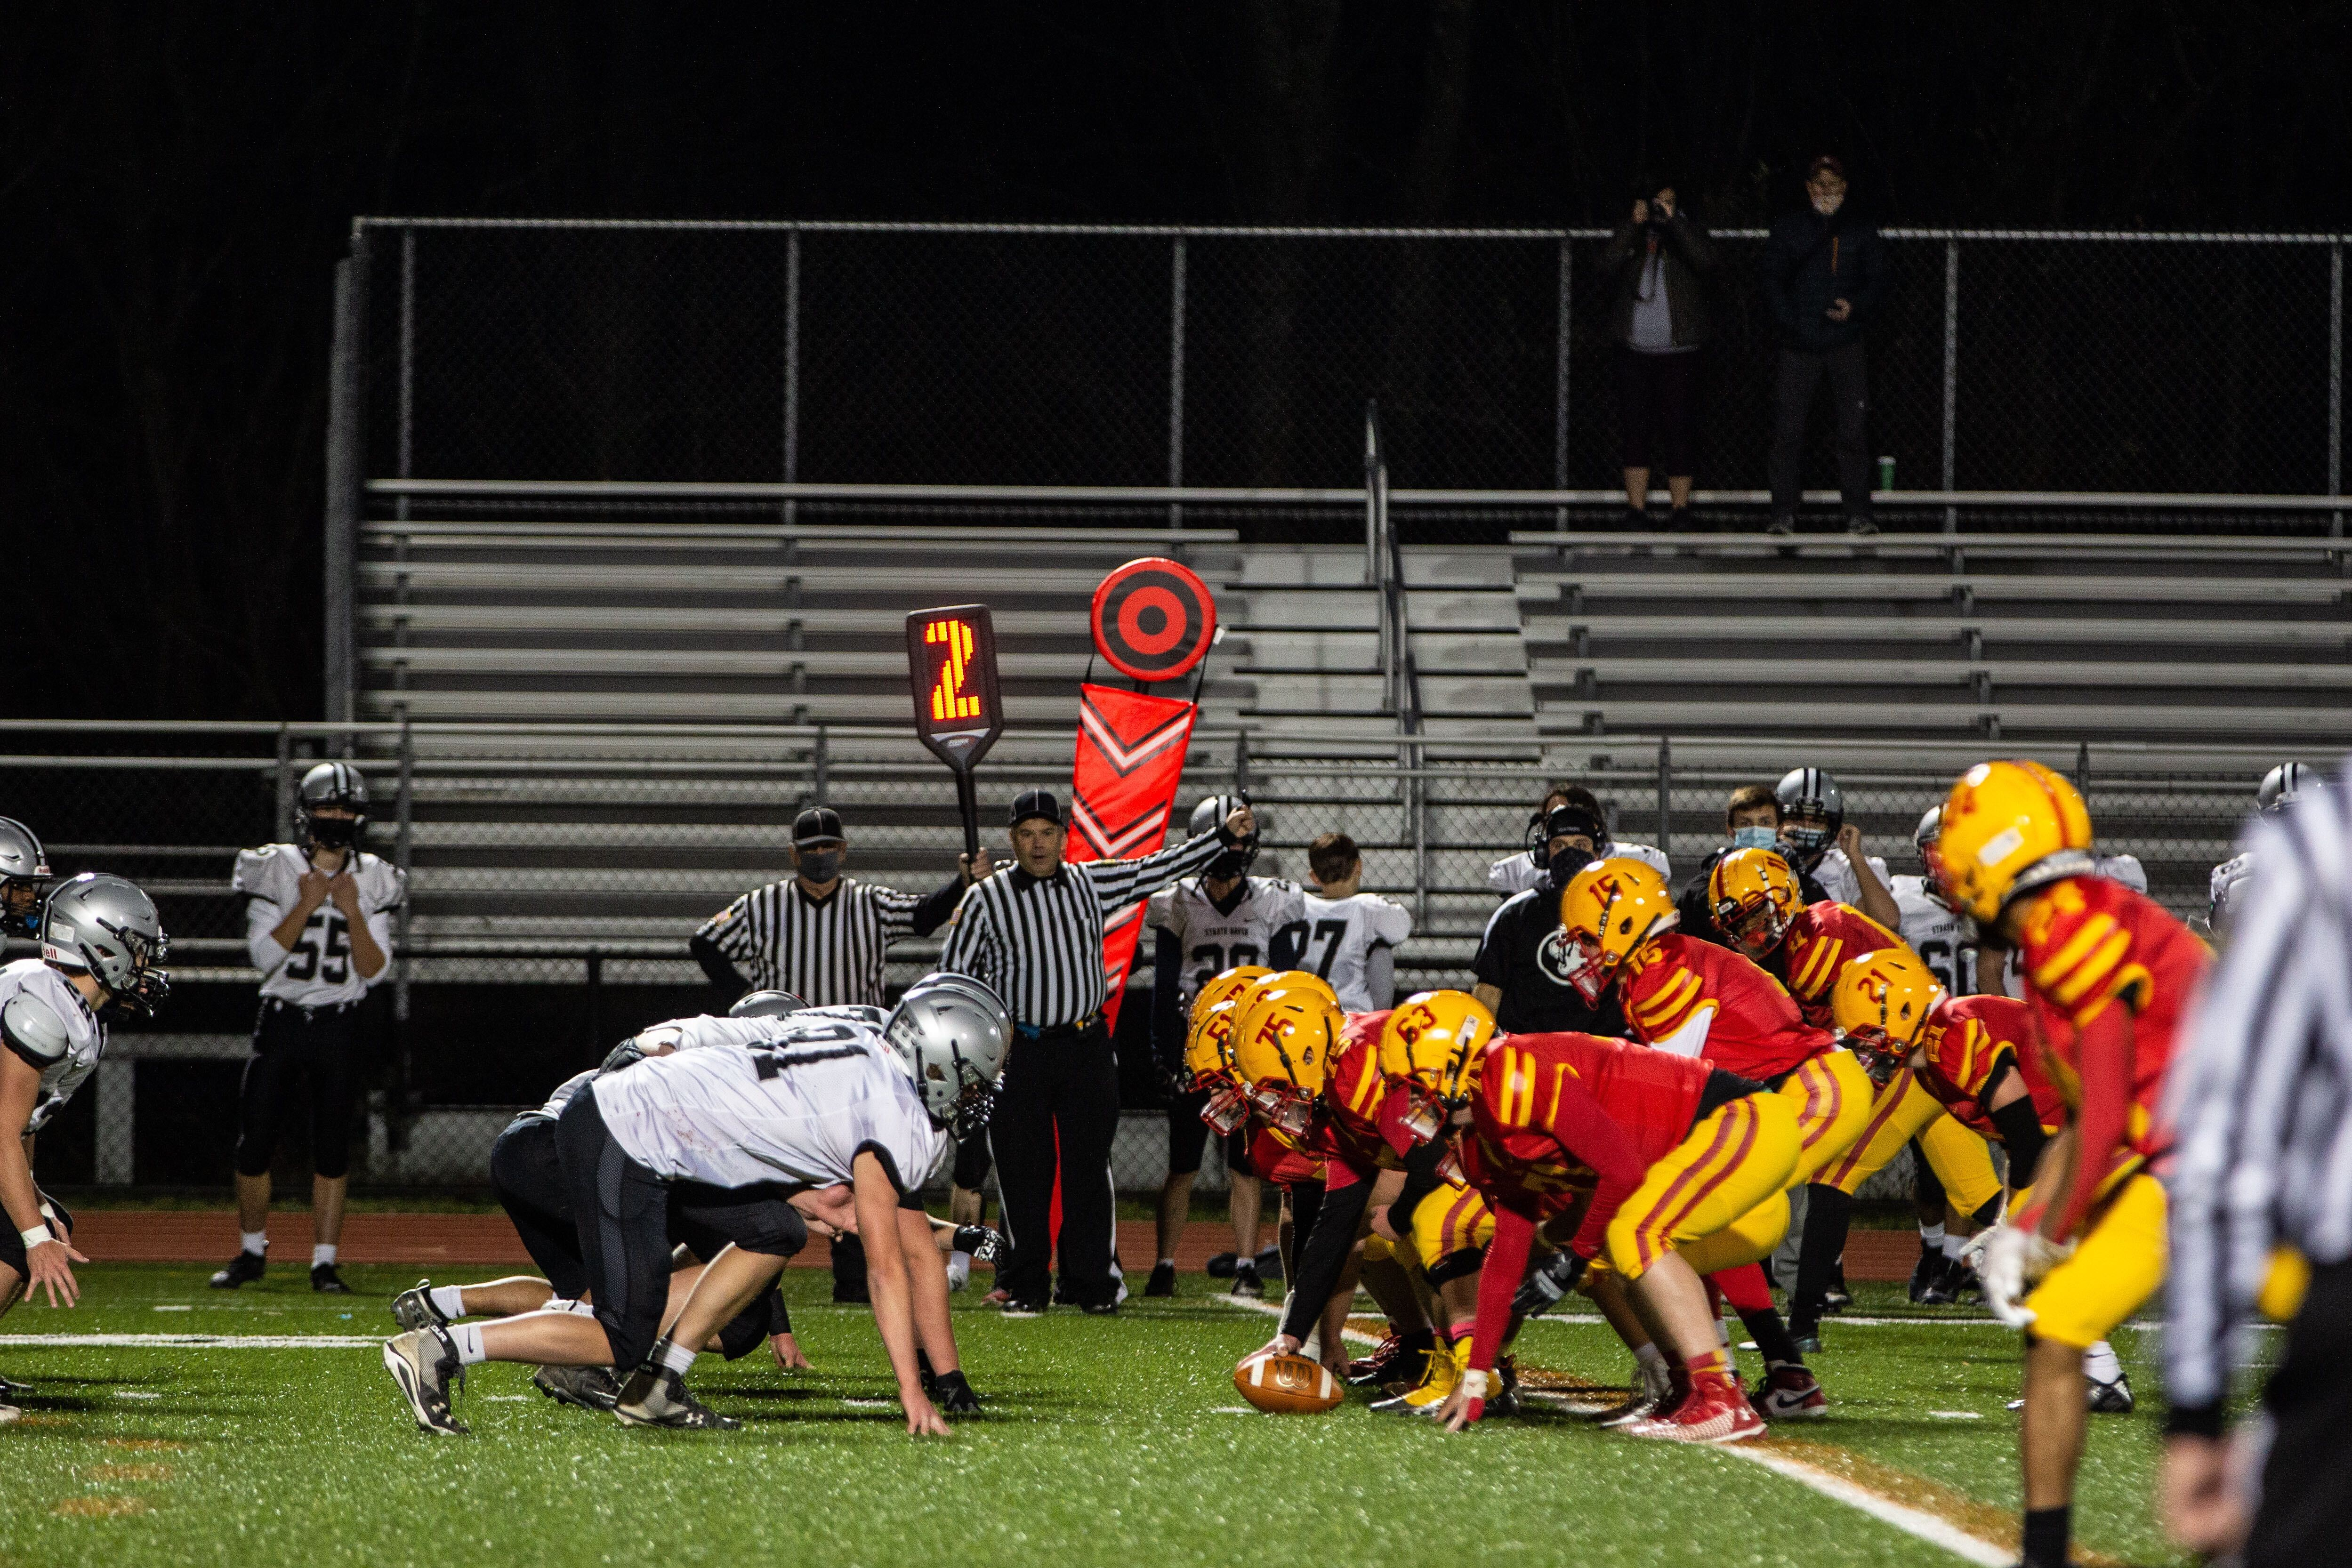 Penncrest football in Delaware county has continued during the pandemic.